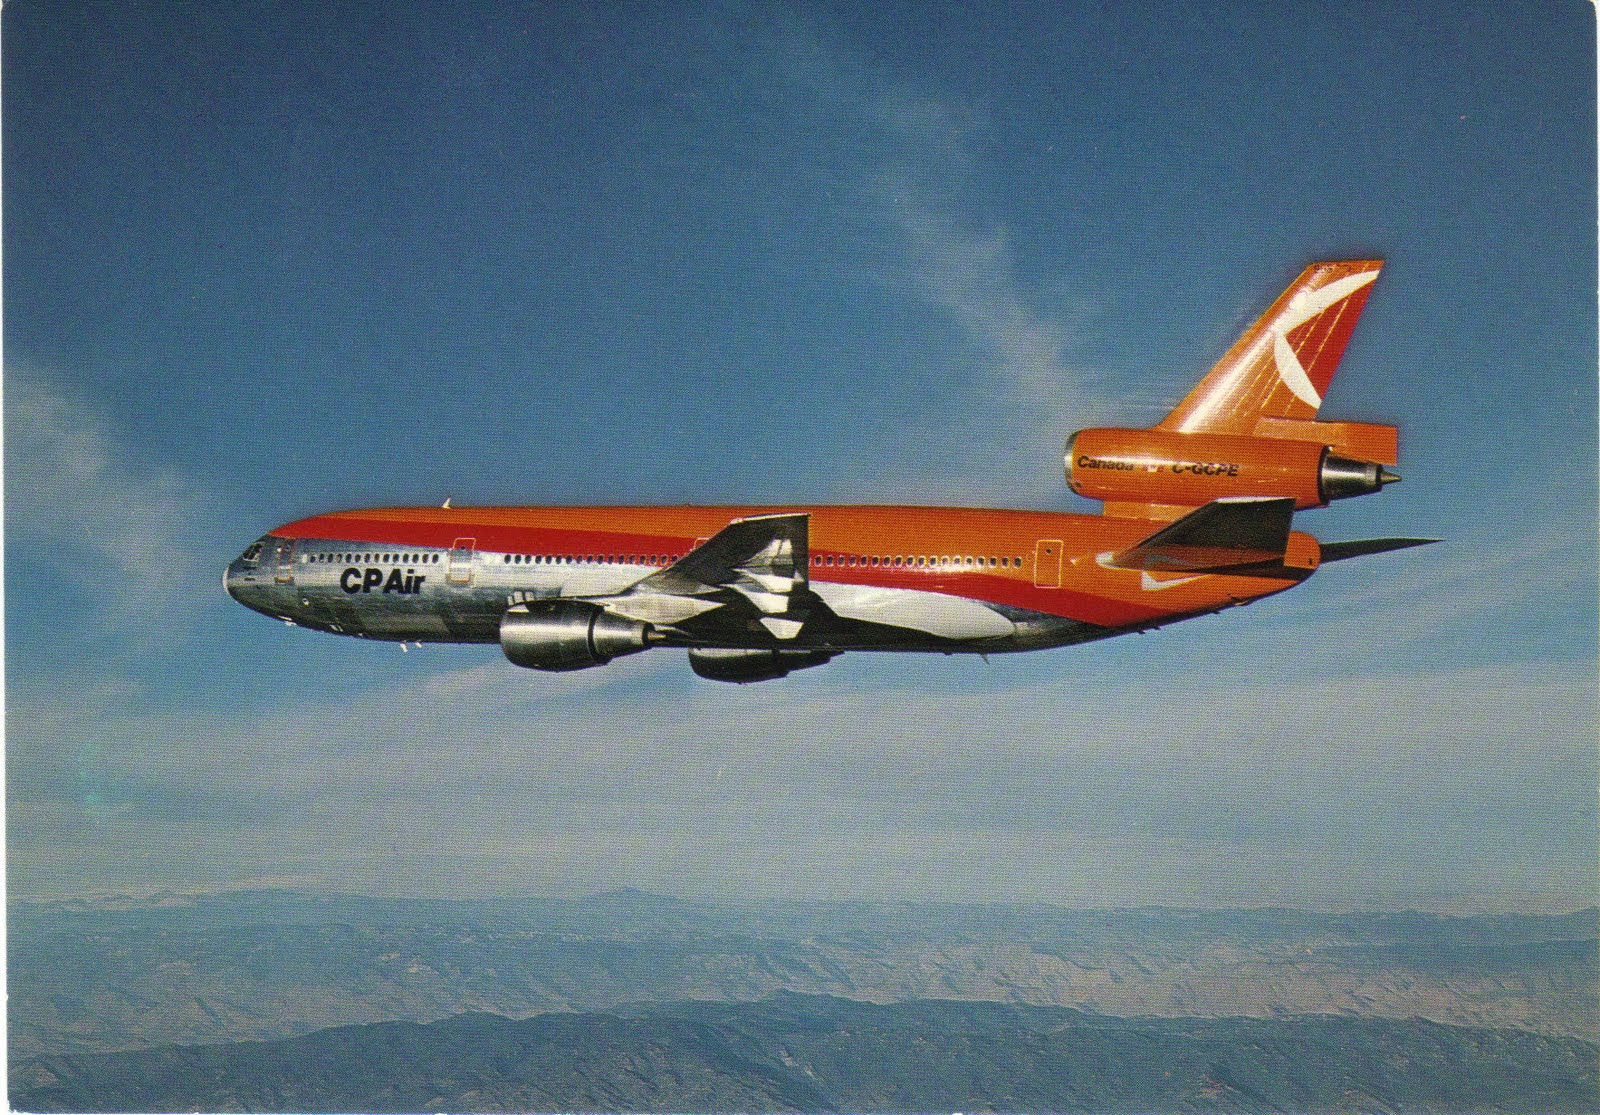 Airlines Past & Present: CP Air Aircraft Postcards